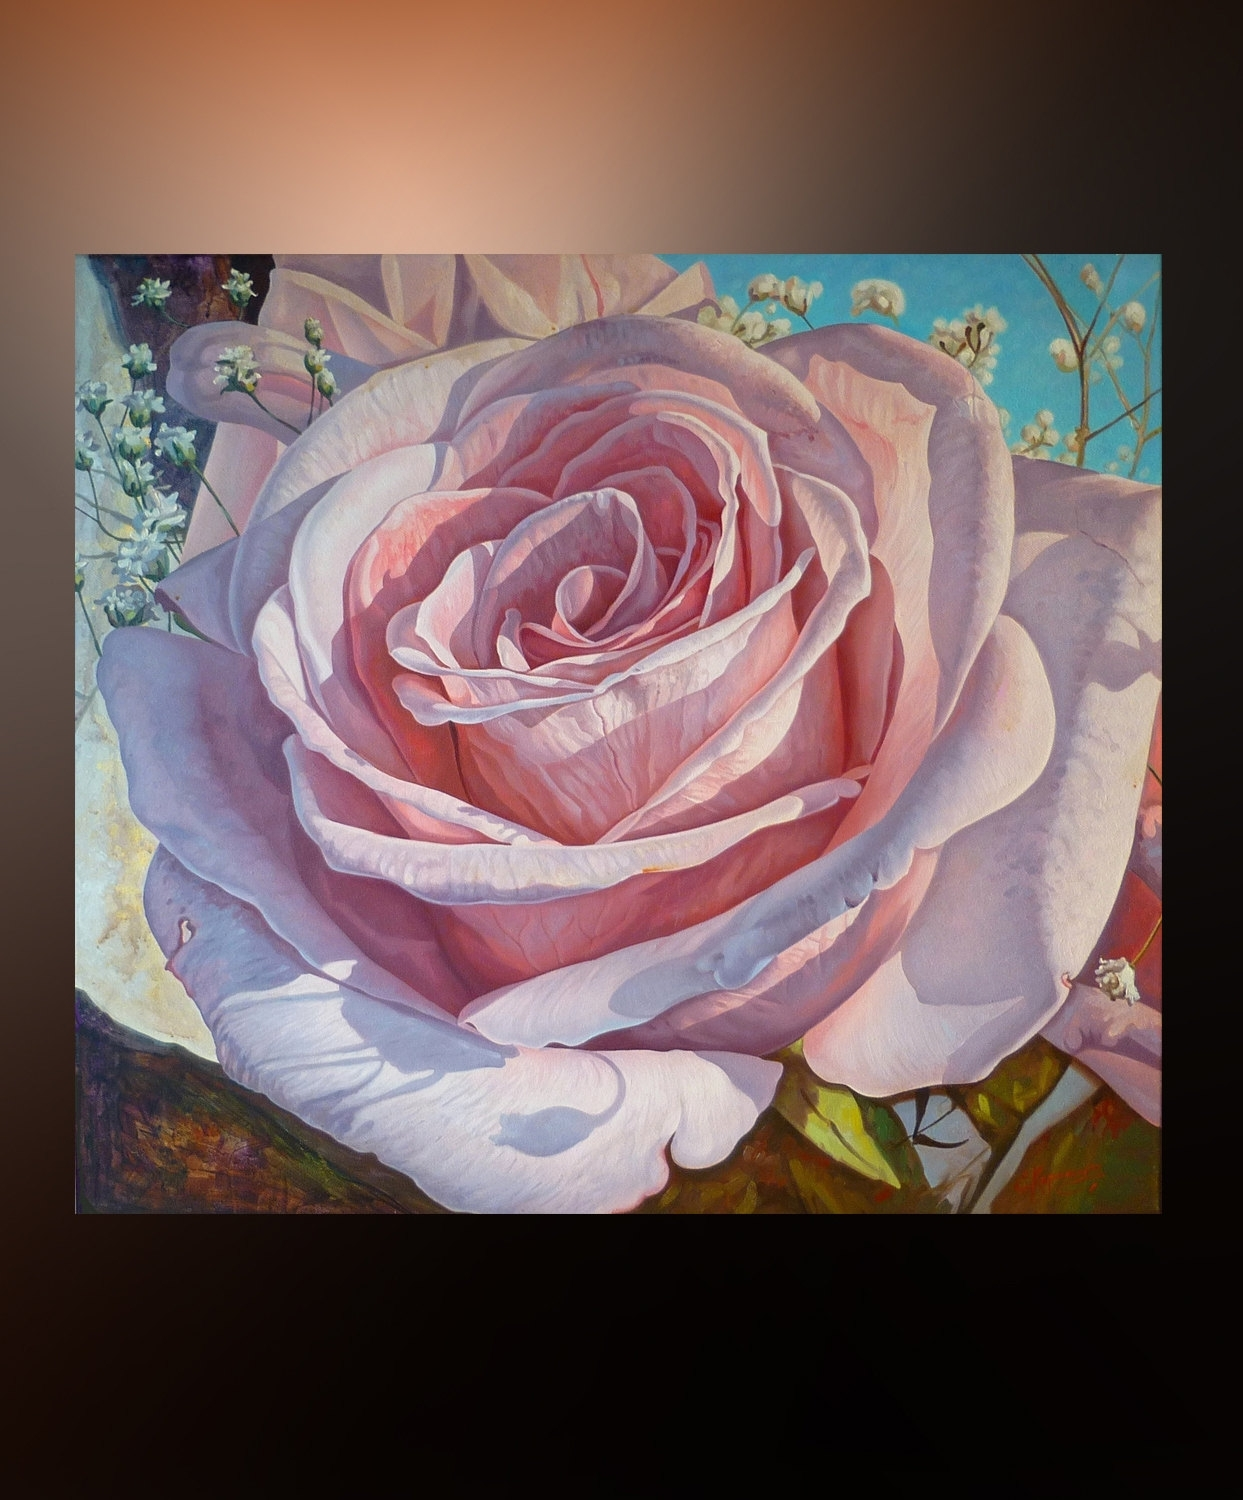 Flower Rose | Large Wall Art | Floral Painting For Bedroom | Oil throughout Best and Newest Roses Canvas Wall Art